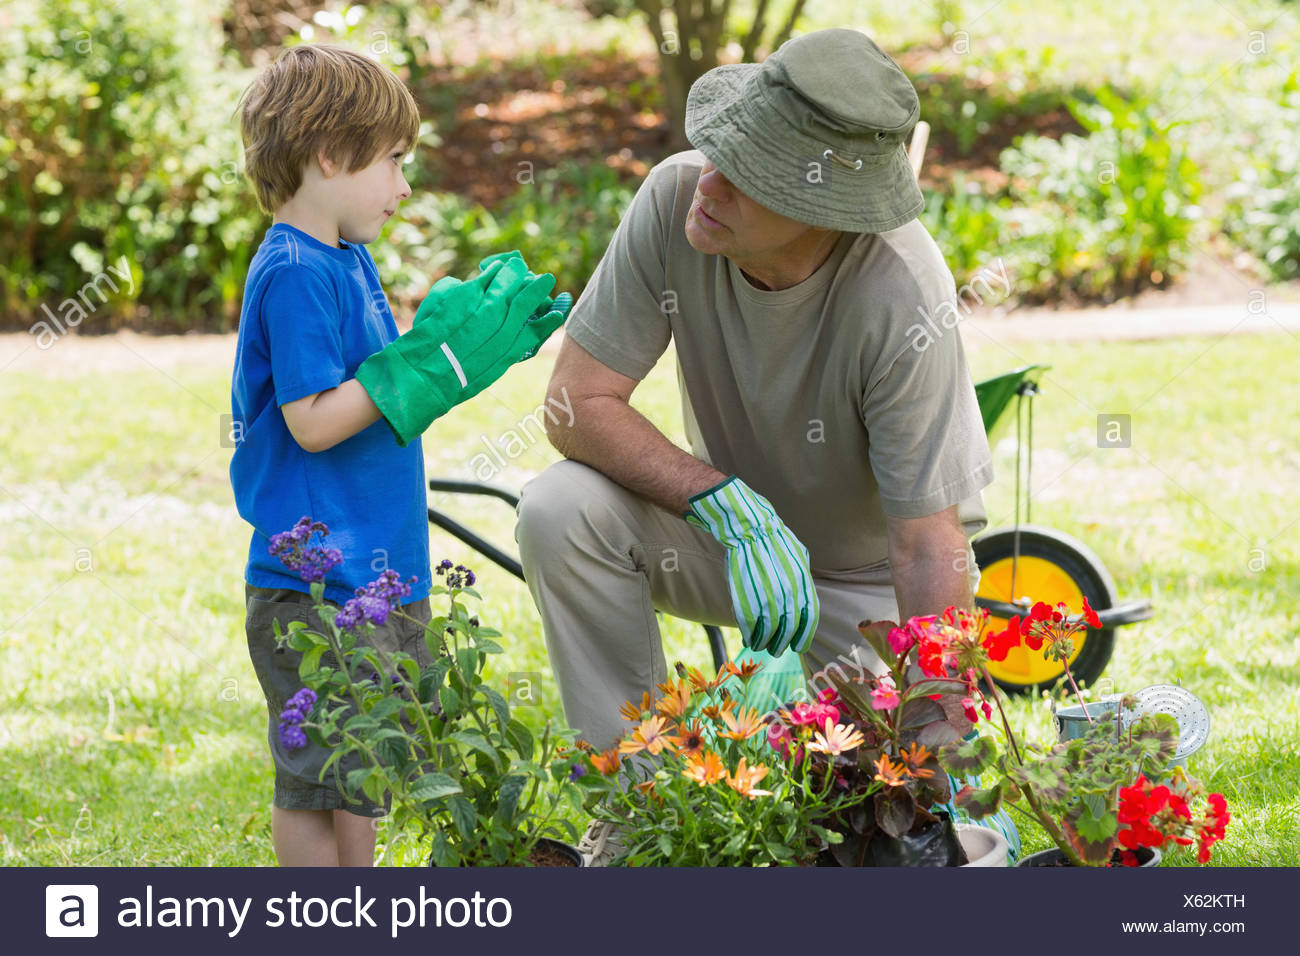 Grand-père et petit-fils engaged in gardening Photo Stock